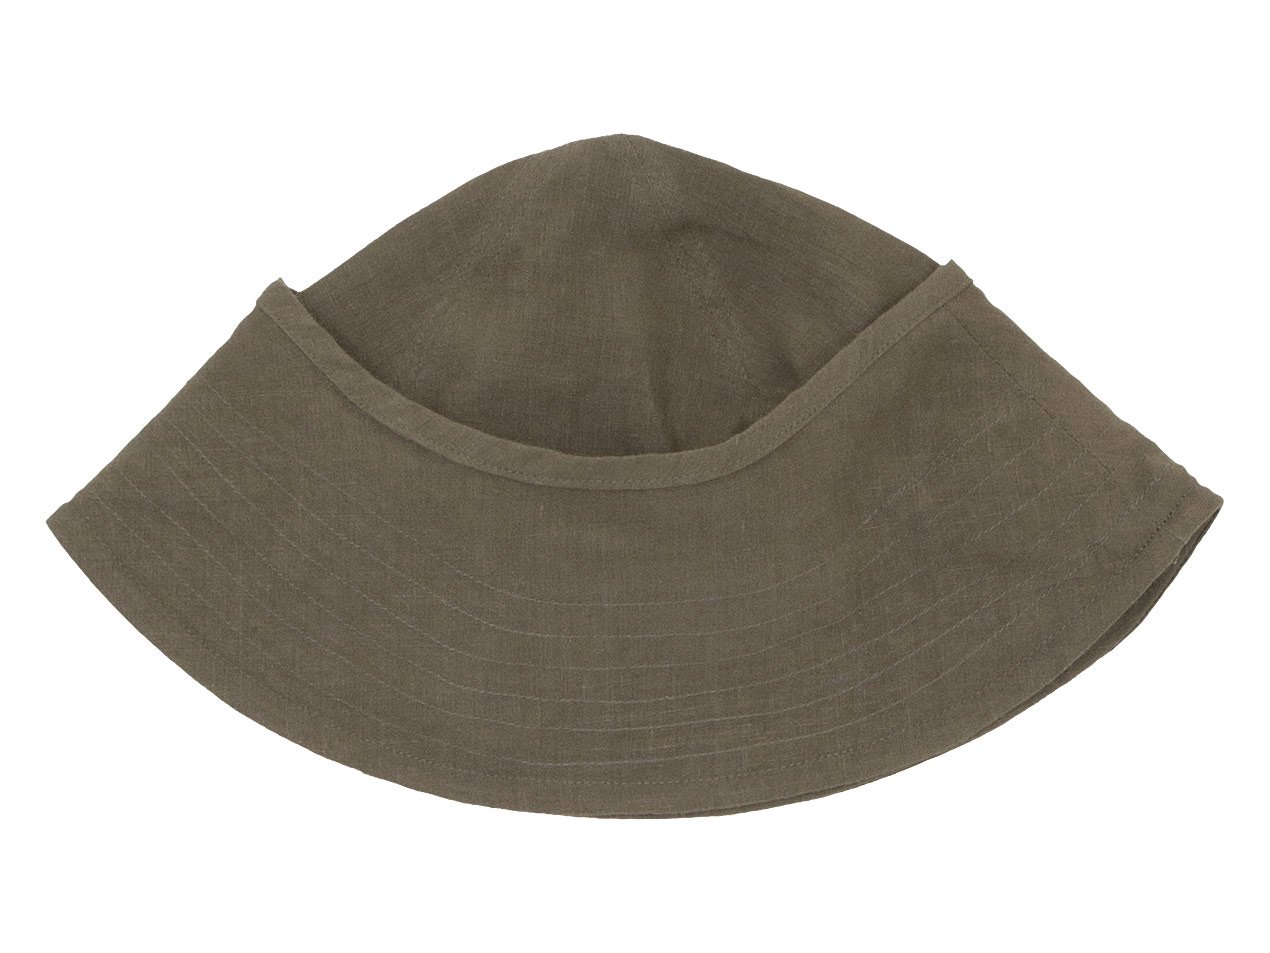 TATAMIZE N HAT BROWN LINEN